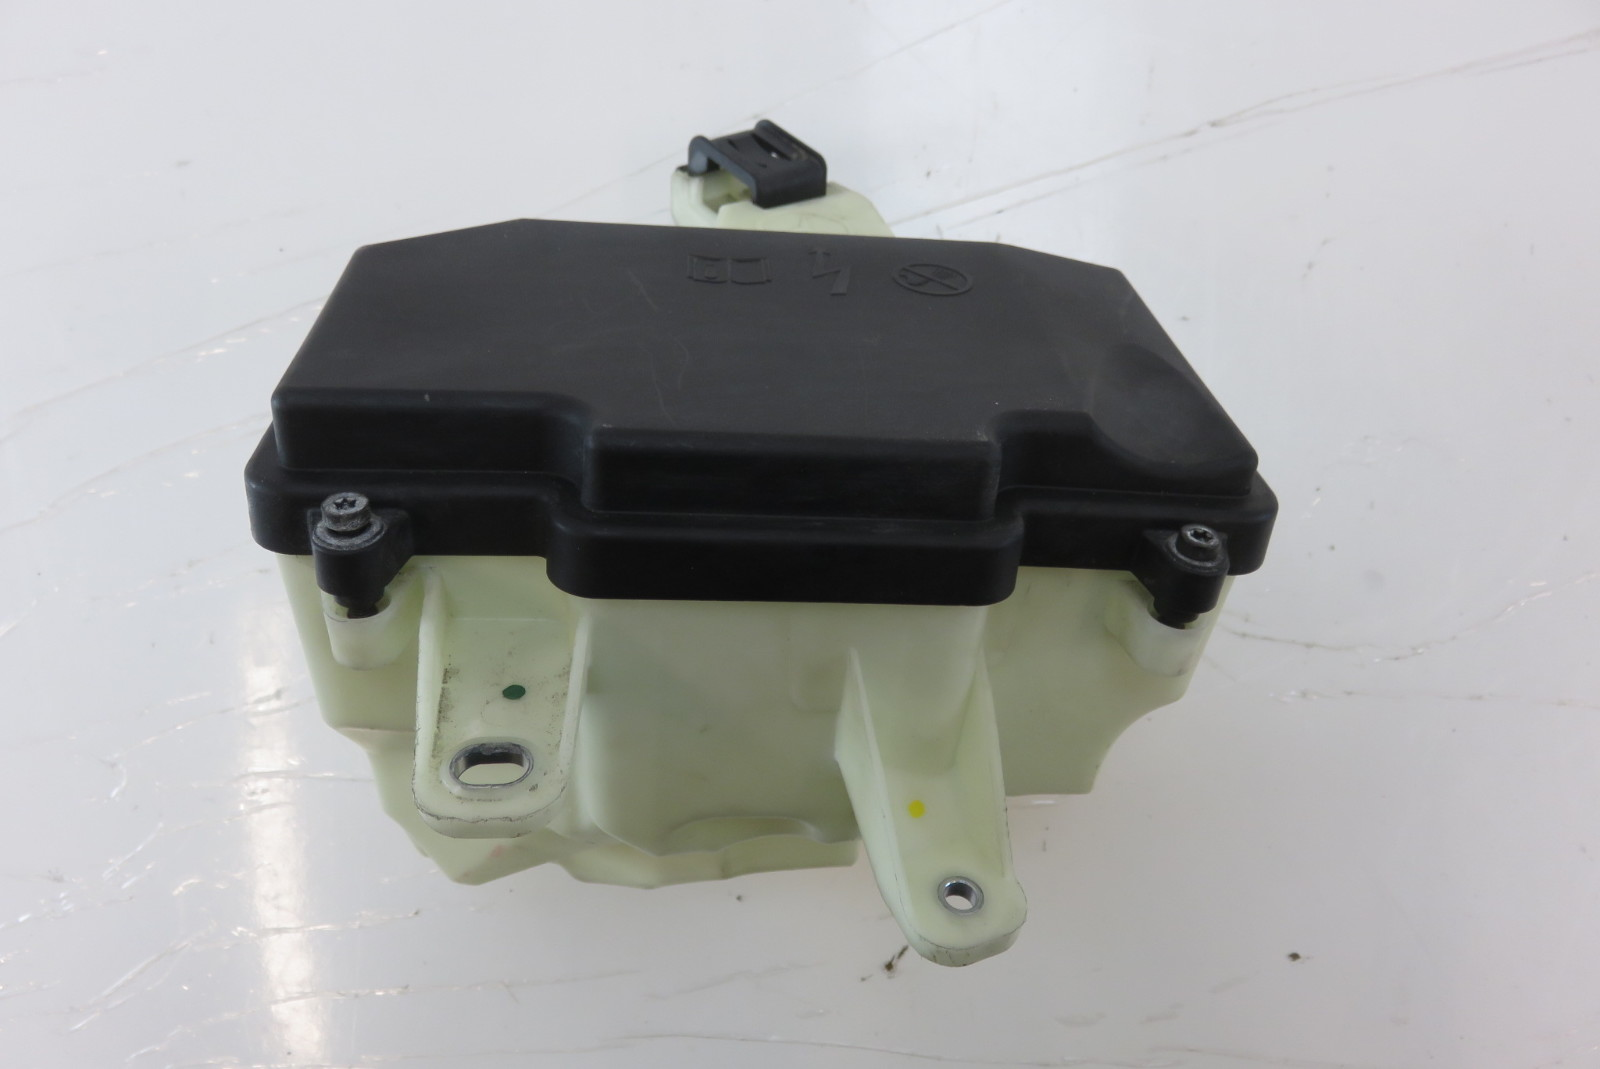 hight resolution of mercedes w222 s550 fuse box housing w cover 2225400024 2225400082